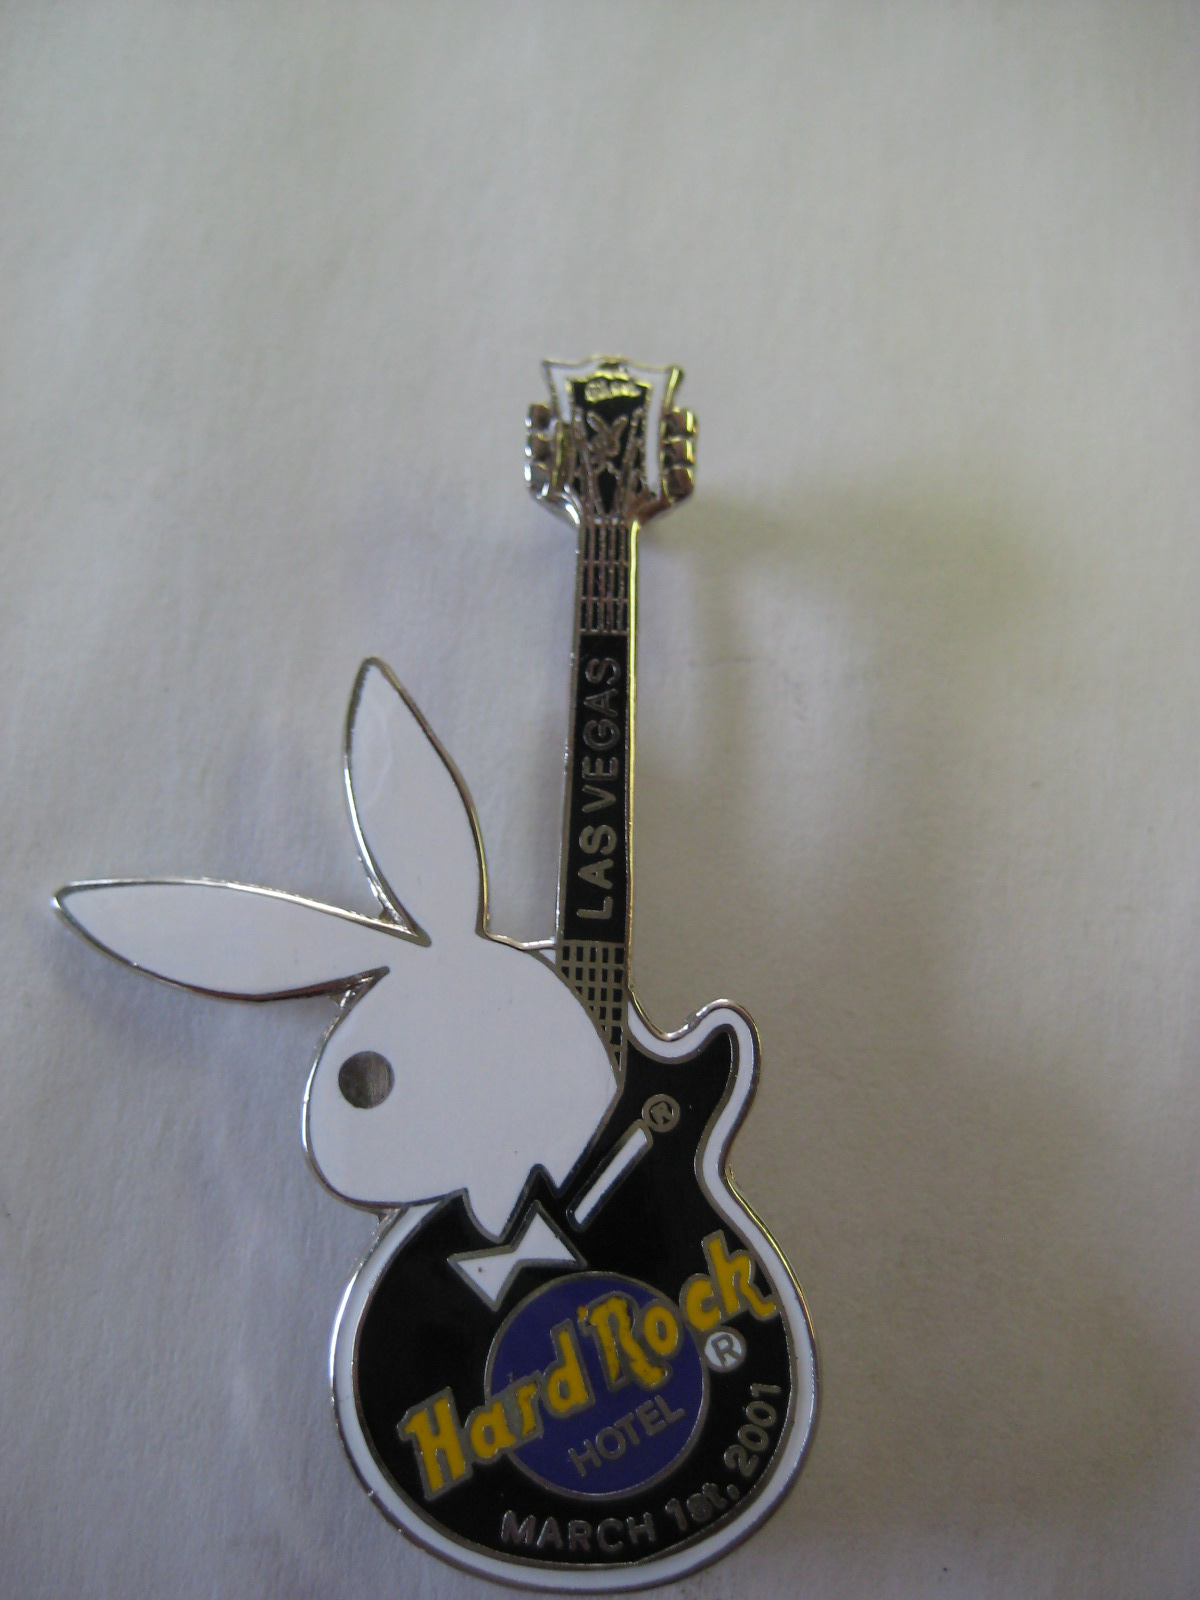 Hard Rock Hotel Playboy Pin